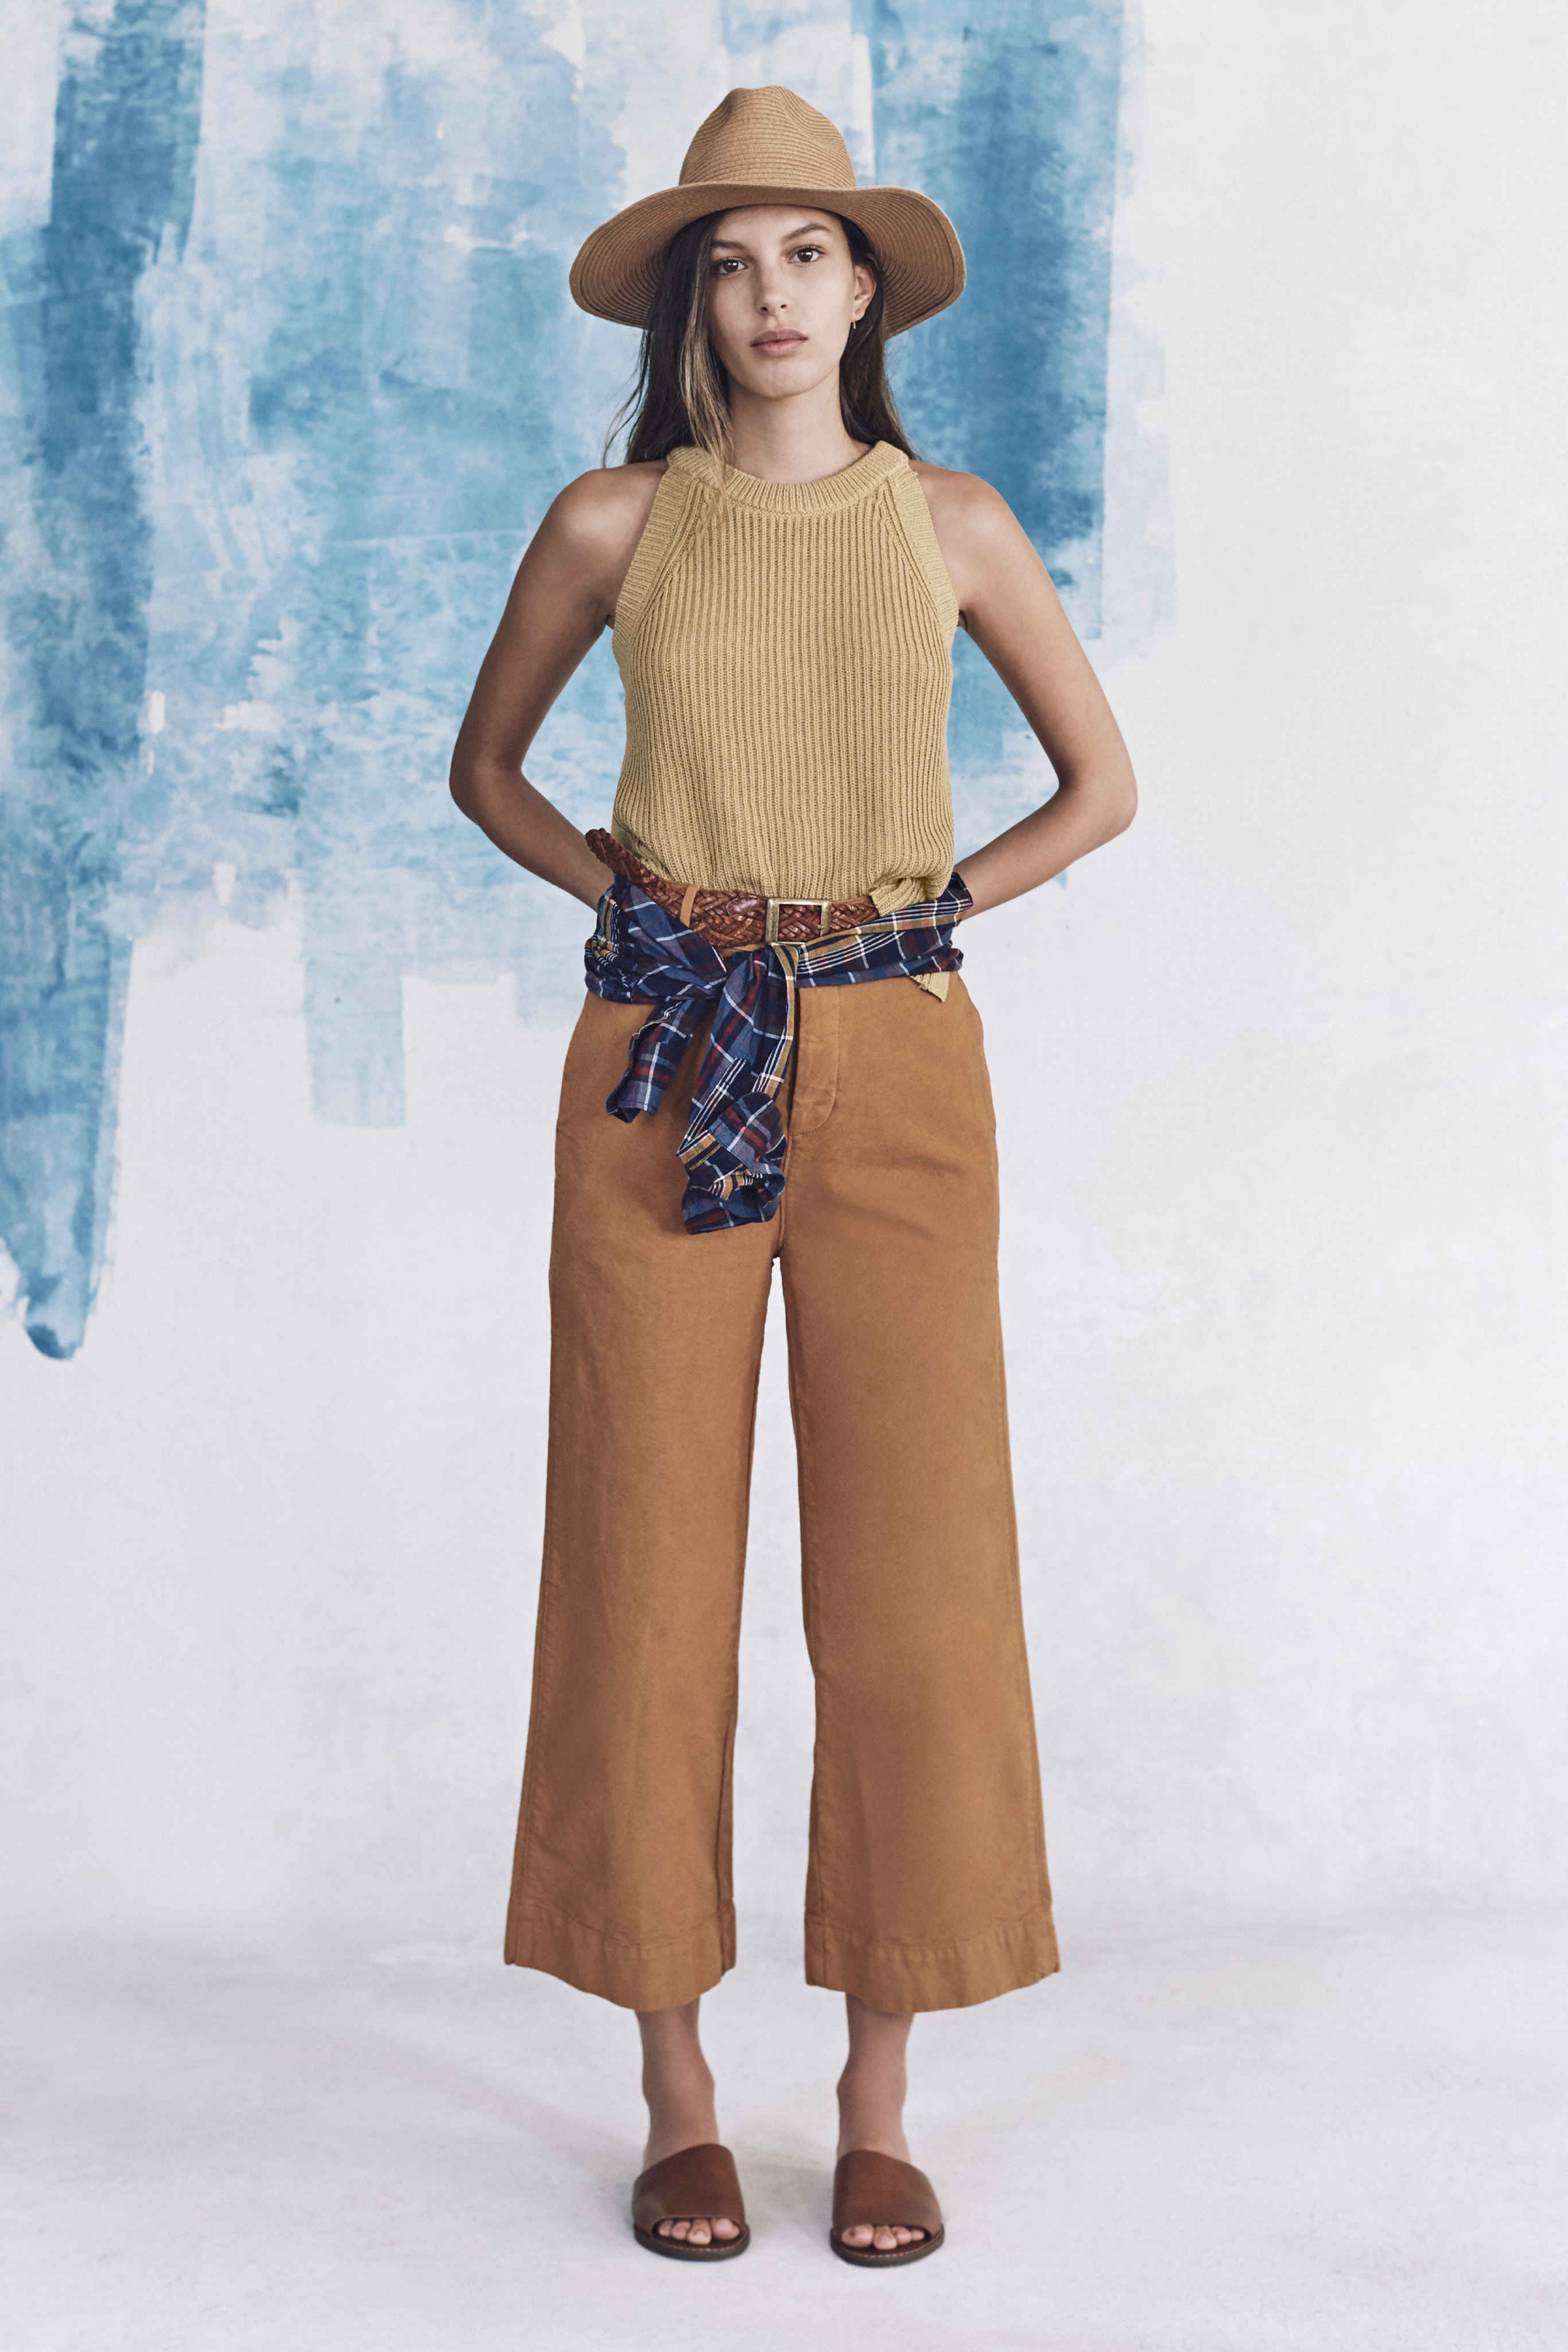 Madewell just released their spring 2016 collection, and trust me, you are going to be clamoring for every single piece. It's just so wearable. - Madewell Spring 2016 Lookbook - Tone on Tone